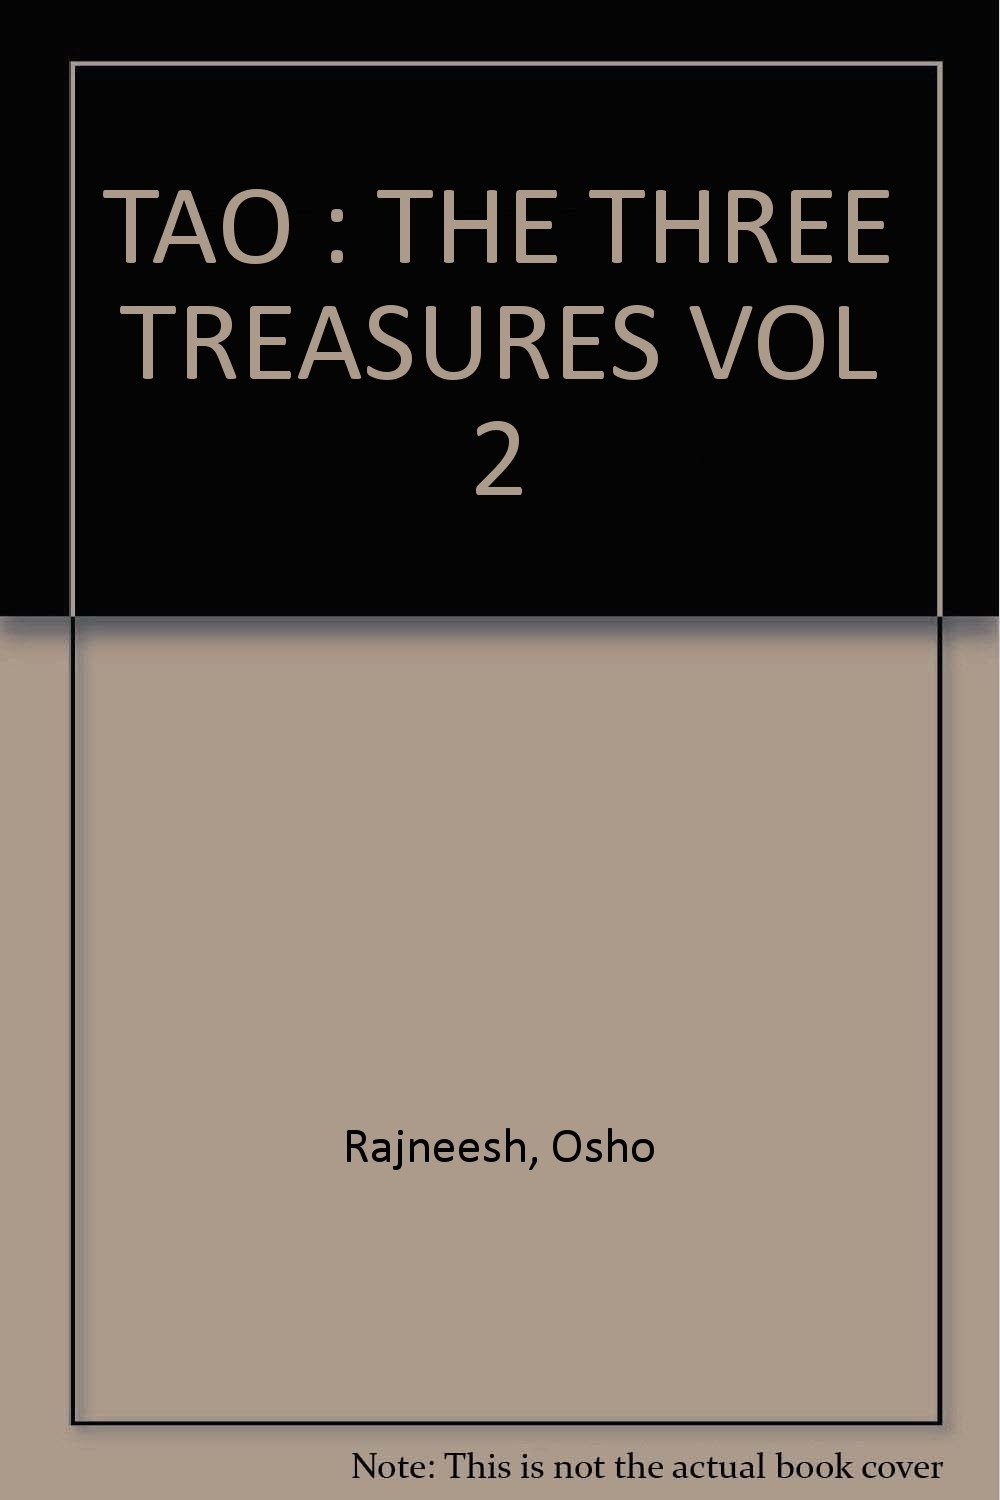 Tao: The Three Treasures, Vol. 2: Talks on Fragments from Tao Te Ching by Lao Tzu